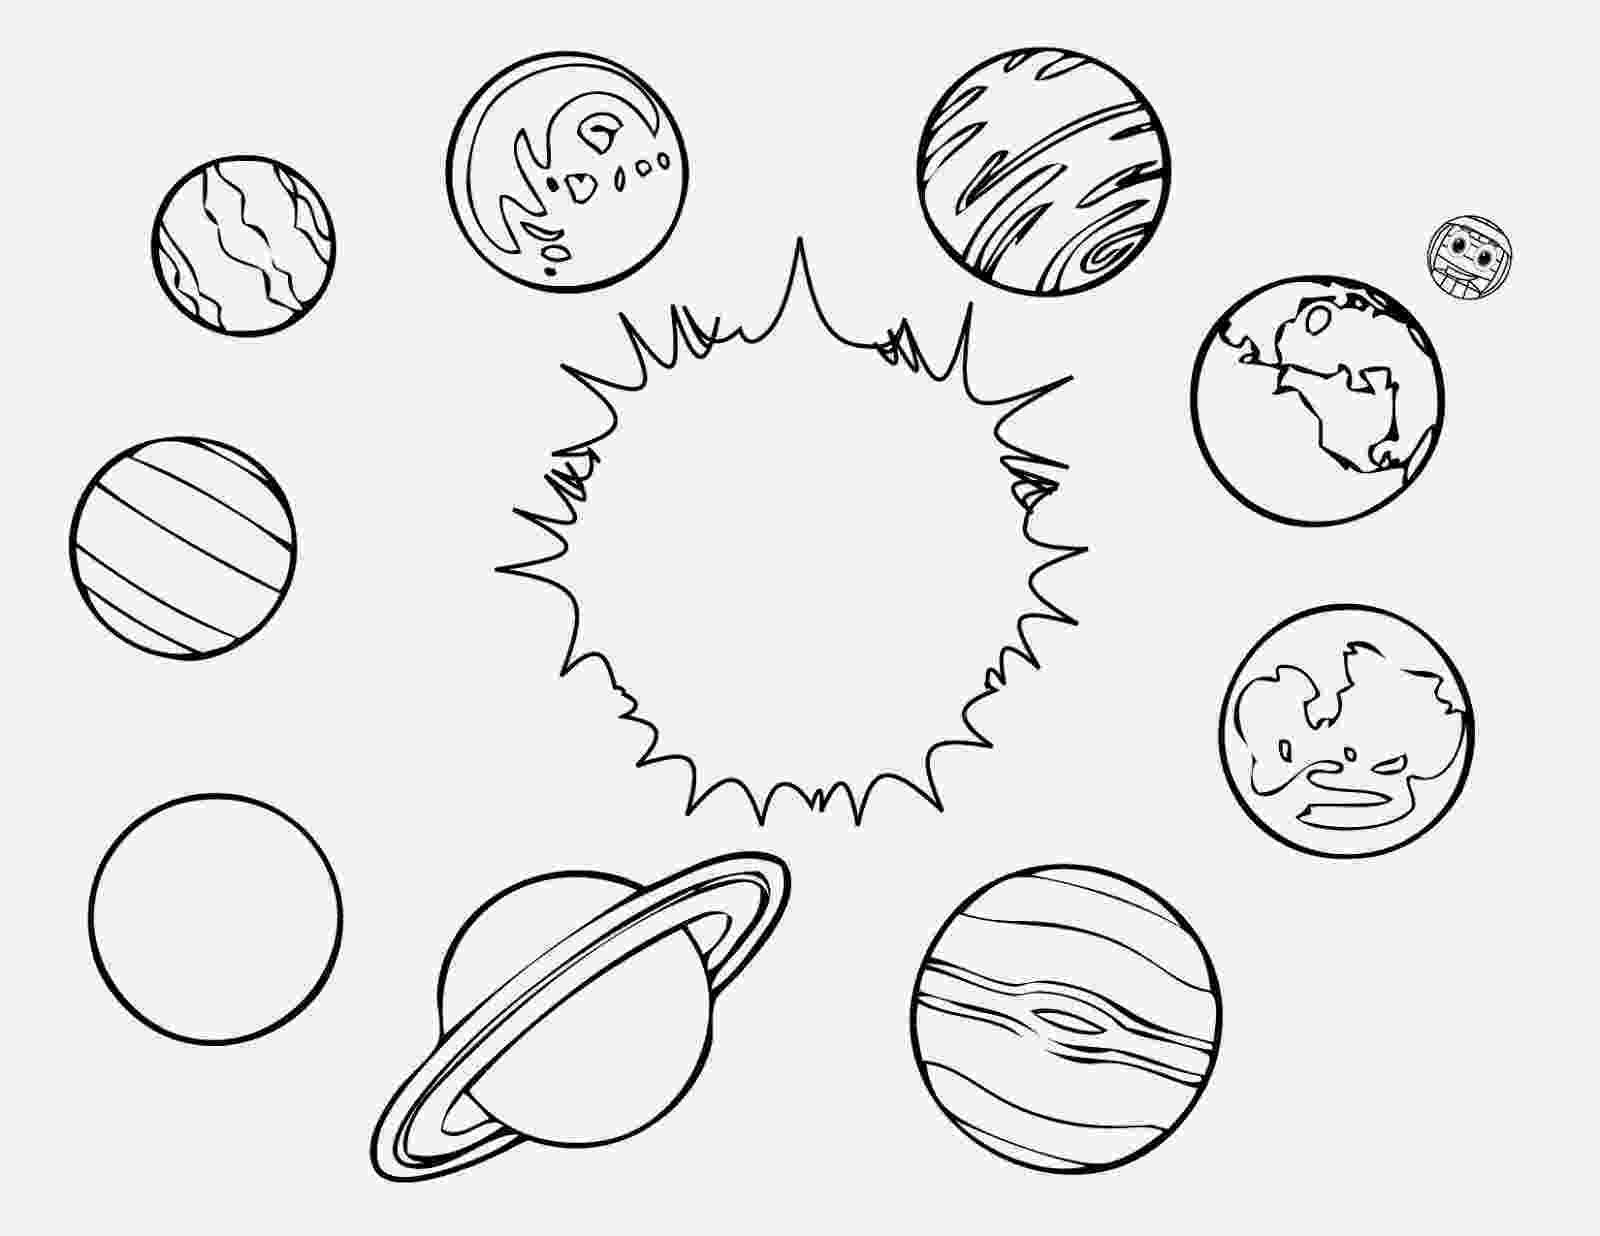 space coloring pages to print space coloring pages coloring pages to download and print to print coloring space pages